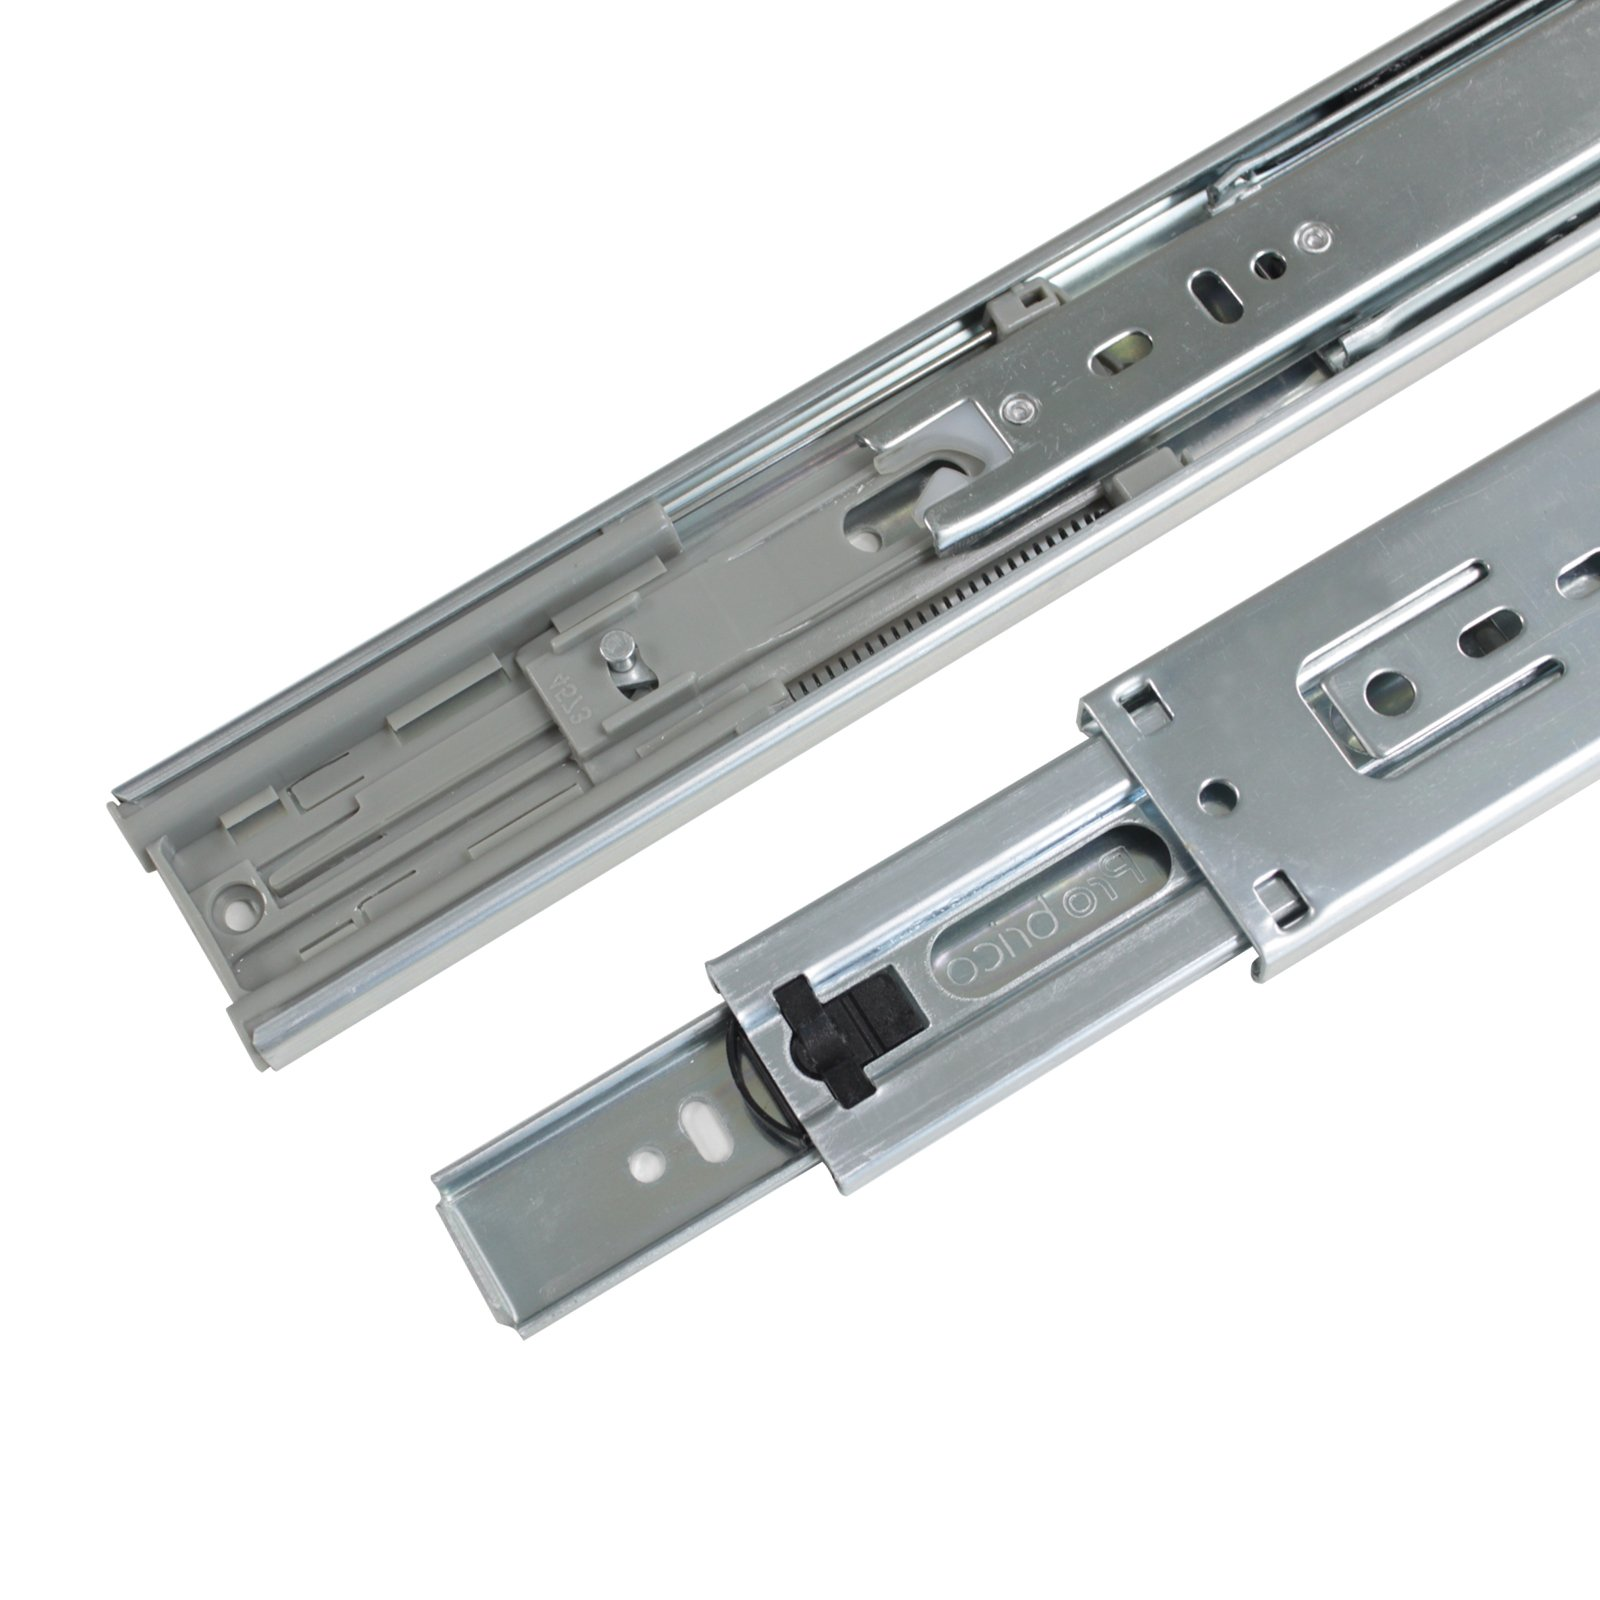 22-Inch Heavy Duty Full Extension Ball Bearing Drawer Slides Soft Close Rail Runners 6Pair(12 Pieces) by Gobrico (Image #4)